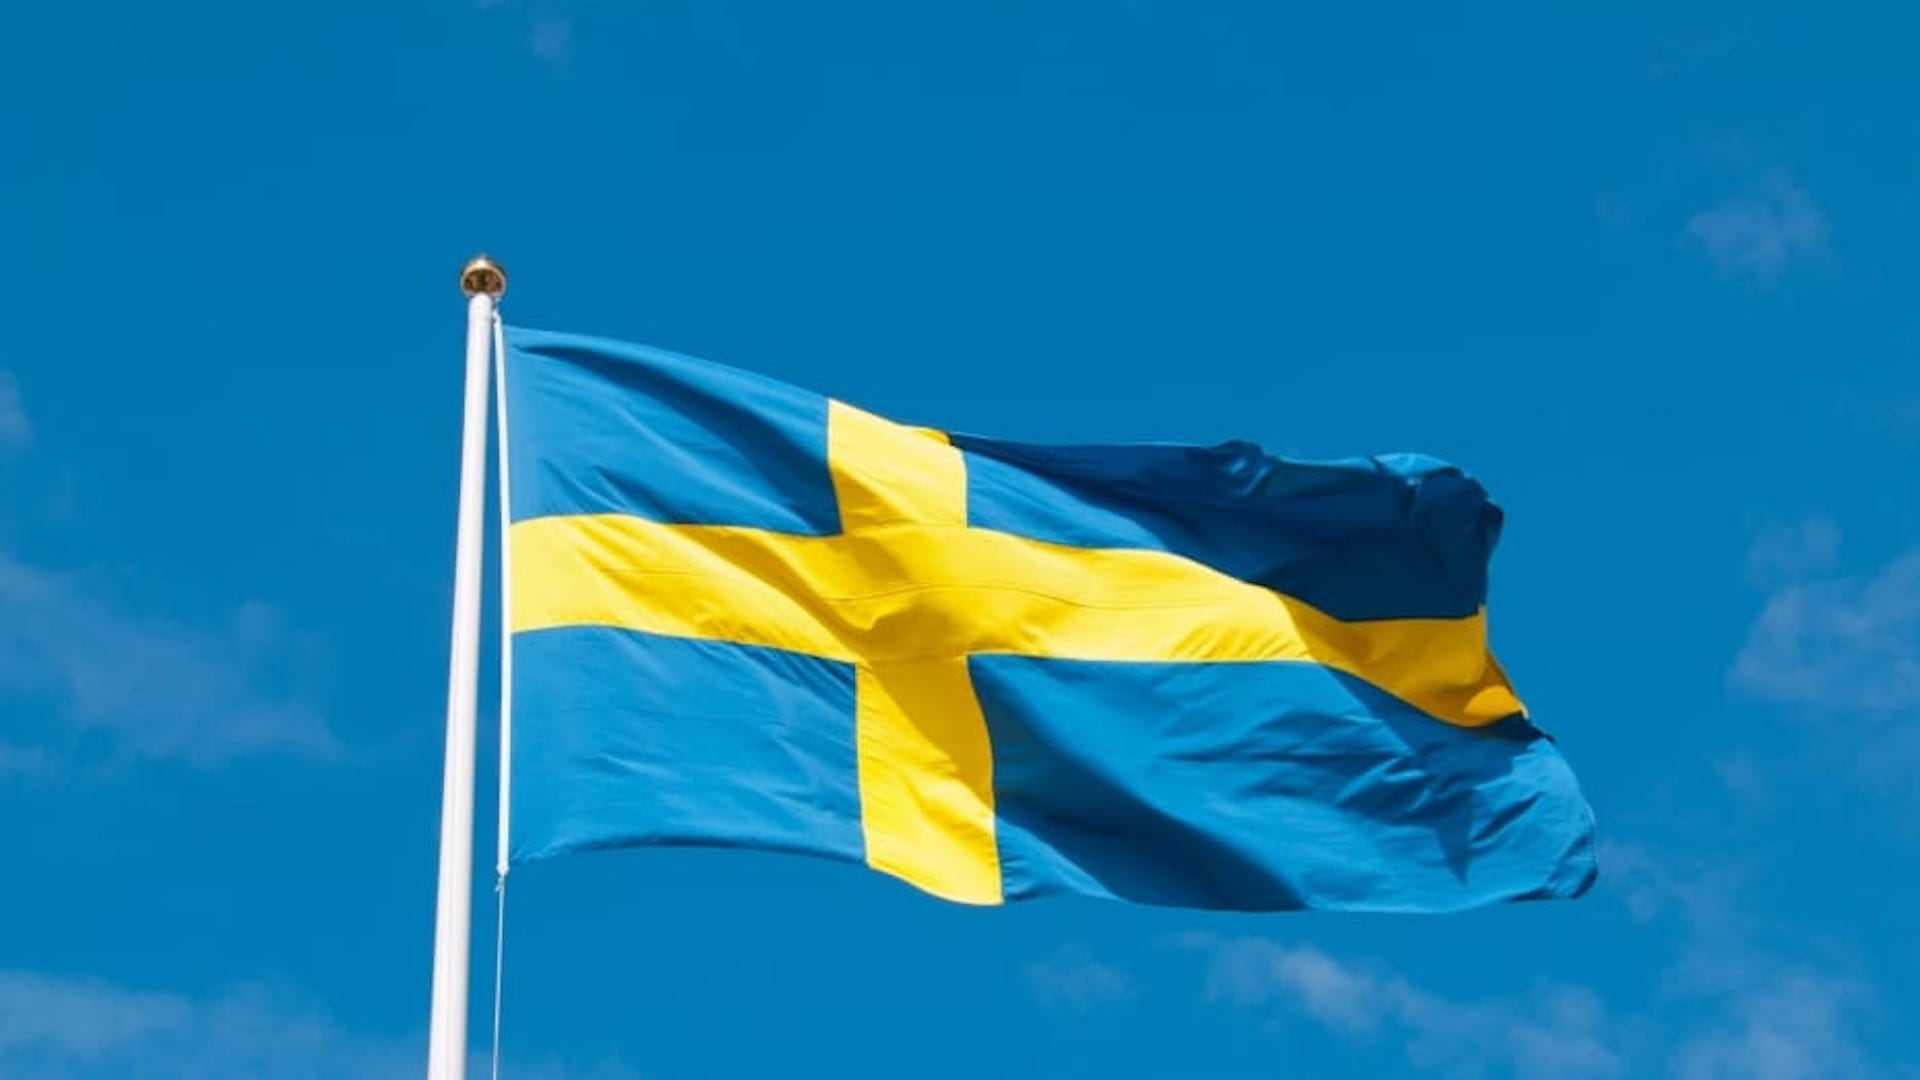 Sweden announces adoption of International Definition of Antisemitism